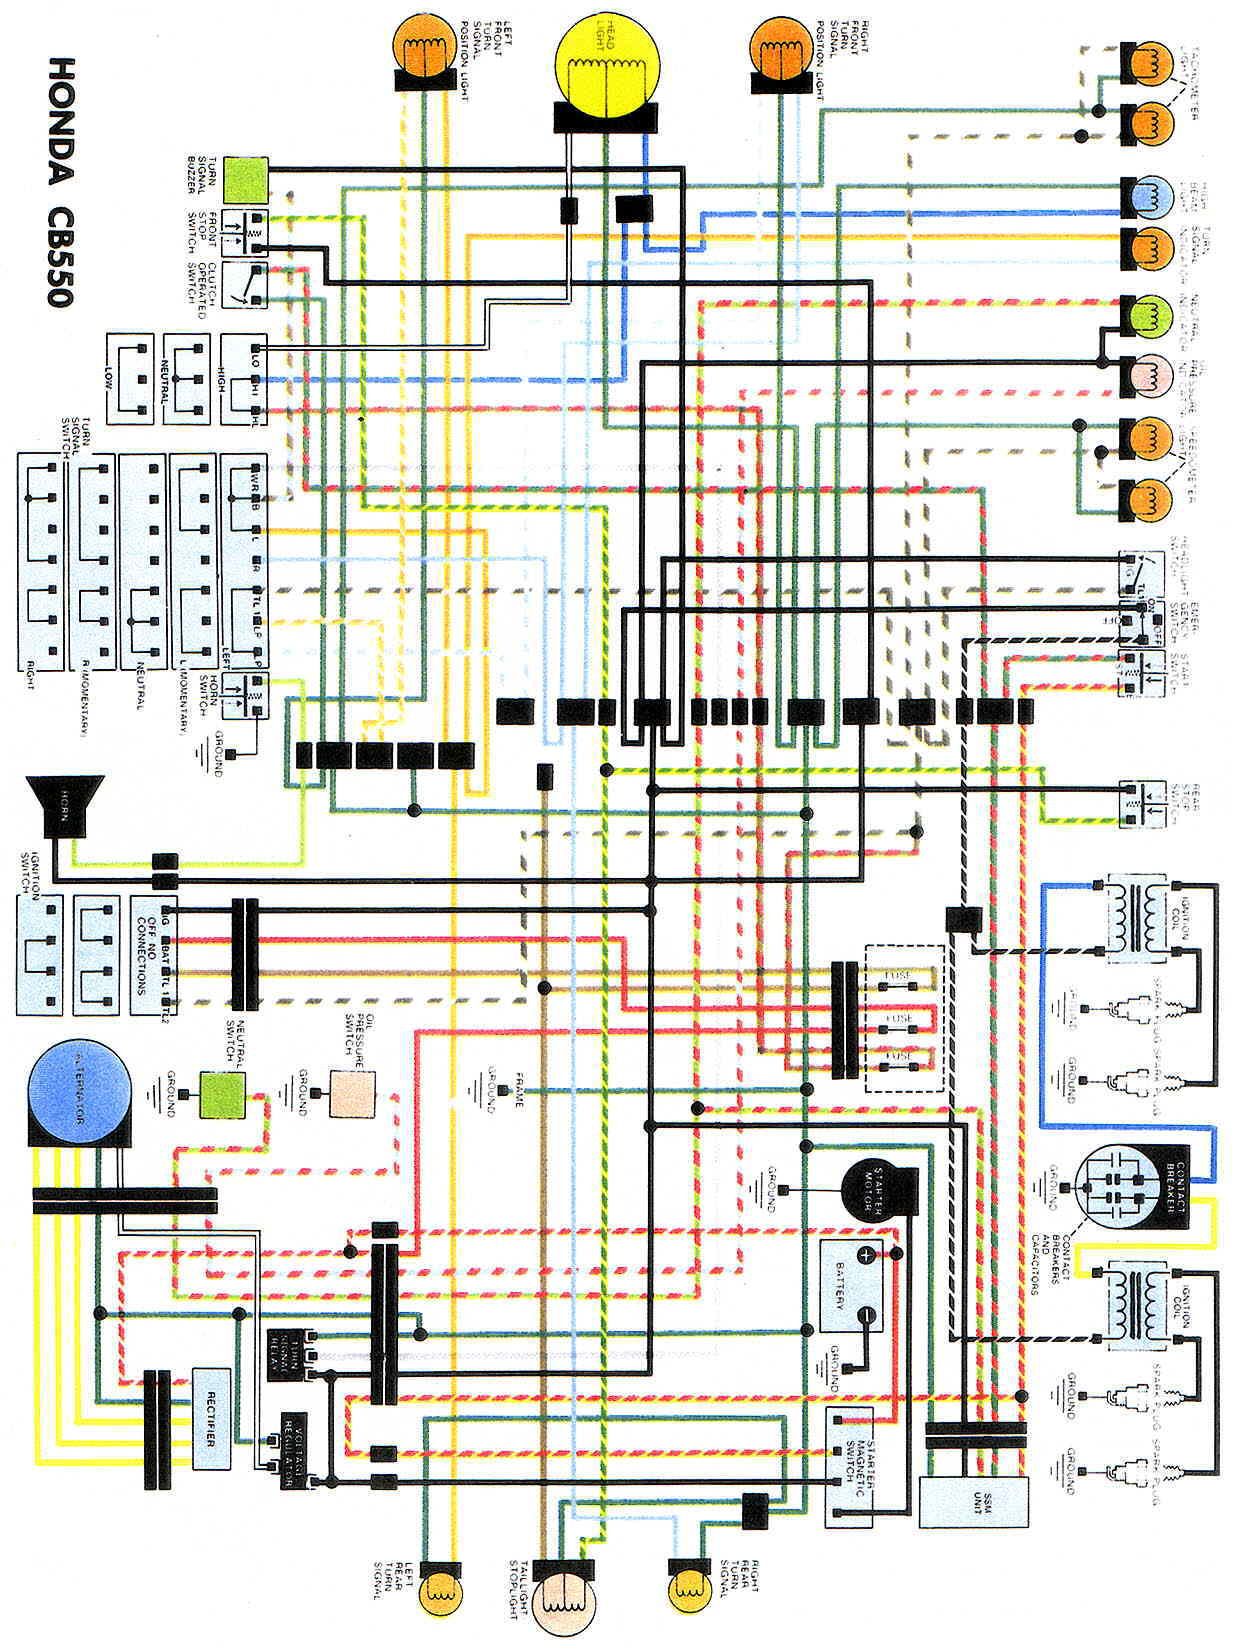 CB550WiringDiag honda cb550 wiring diagram 1976 honda cb550 wiring diagram image honda ft500 ignition system wiring diagram at gsmportal.co